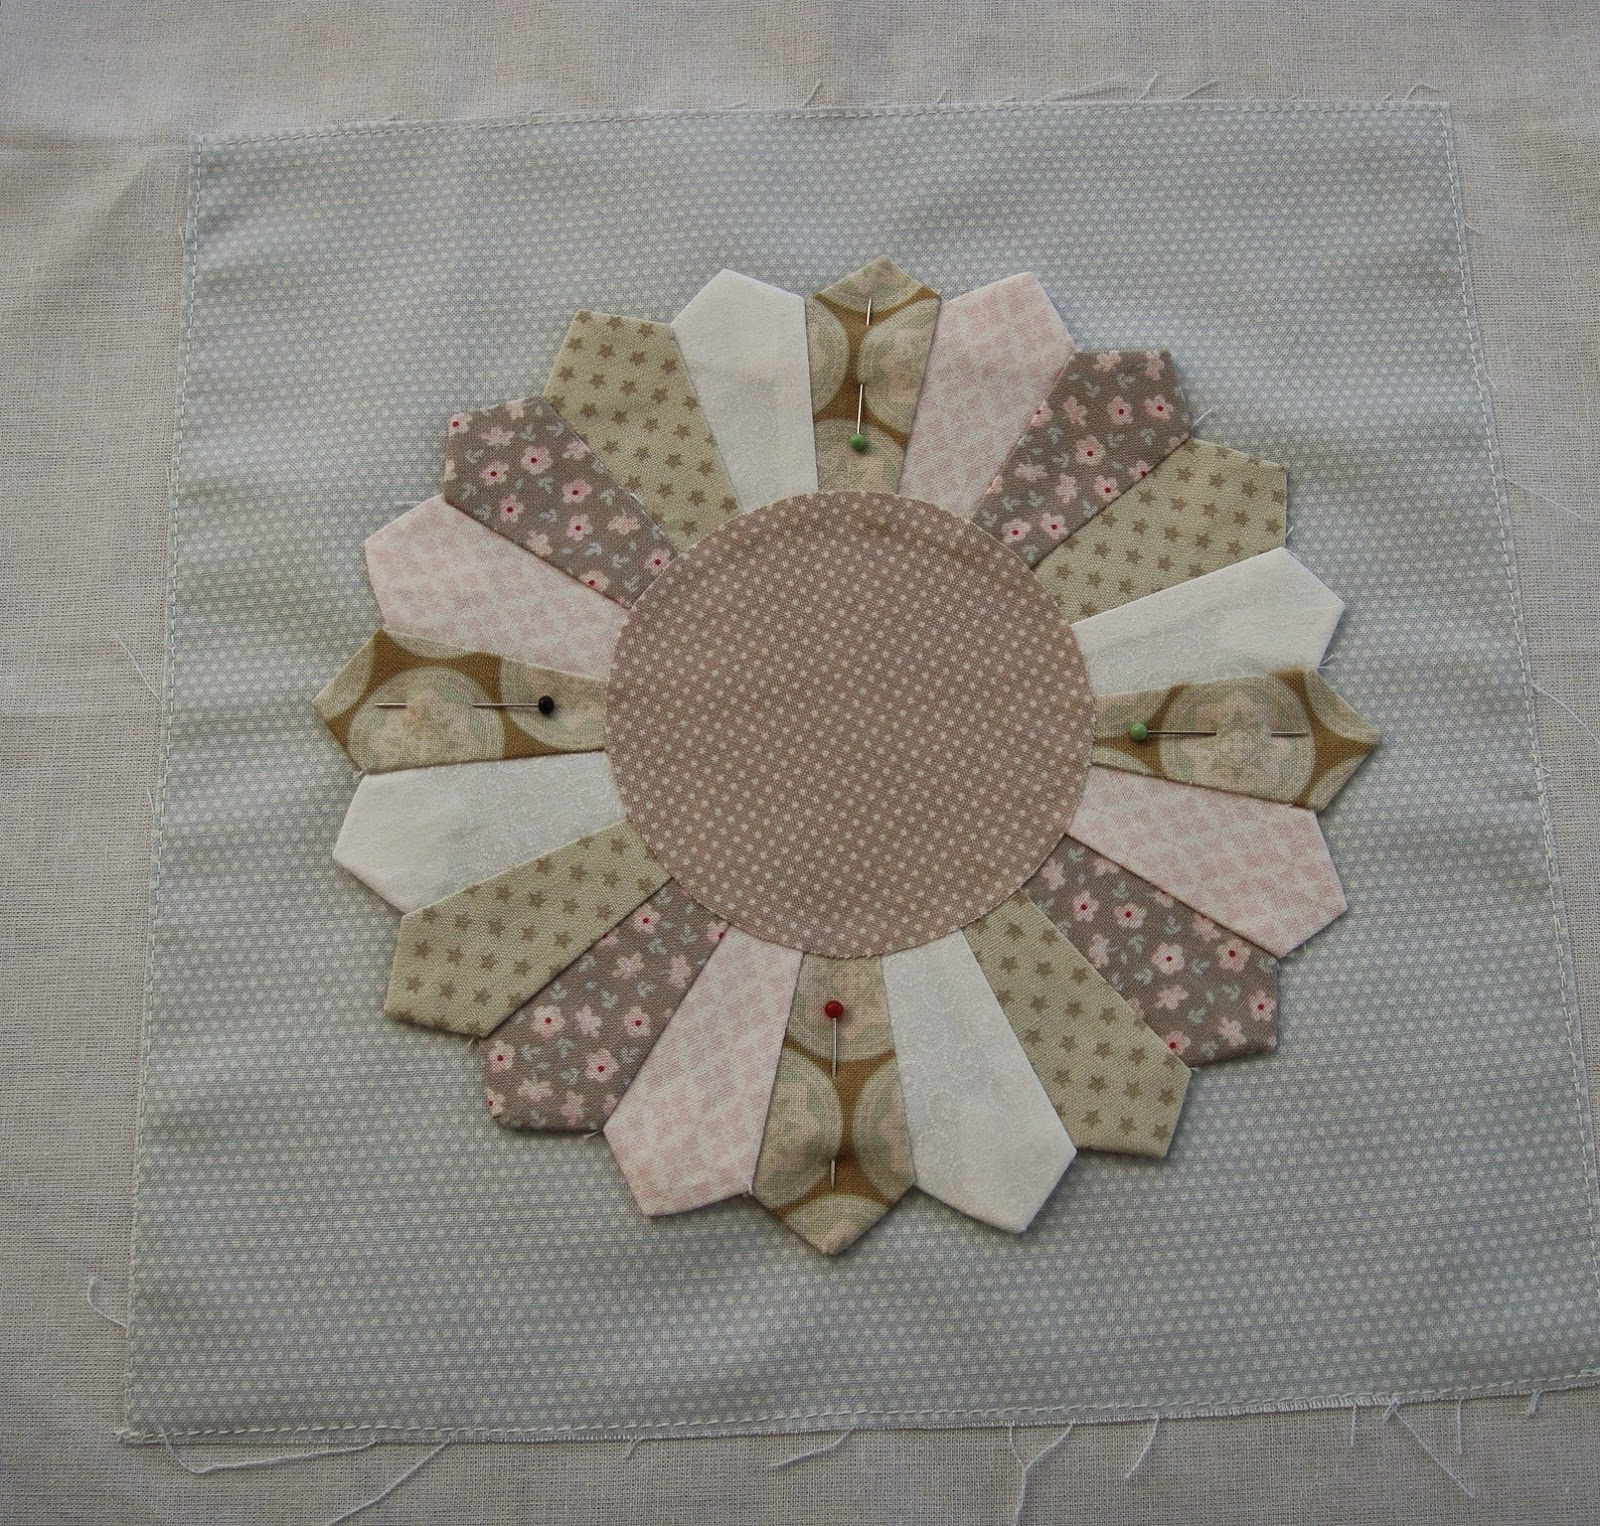 This Time Round, As I Have Learned From My Online Basic Crazy Quilt Course  Run By Kathy Shaw, I Now Know That It Is Very Important For Crazy Quilt  Blocks To